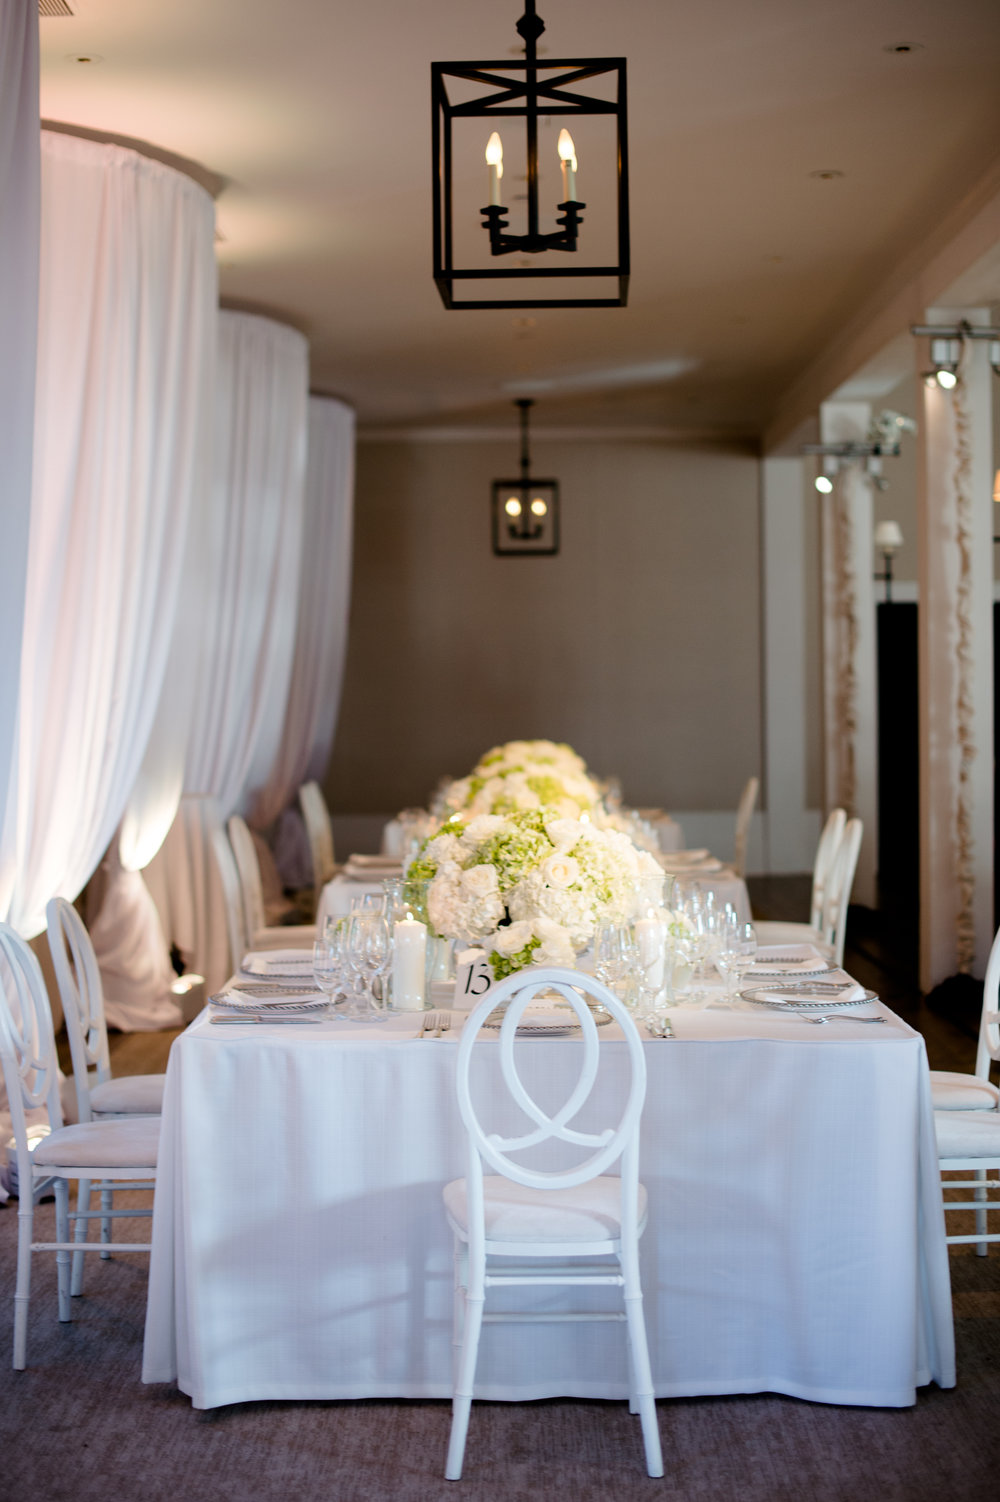 Kiawah Island River Course Wedding Reception Decor - Charleston Wedding Photographer